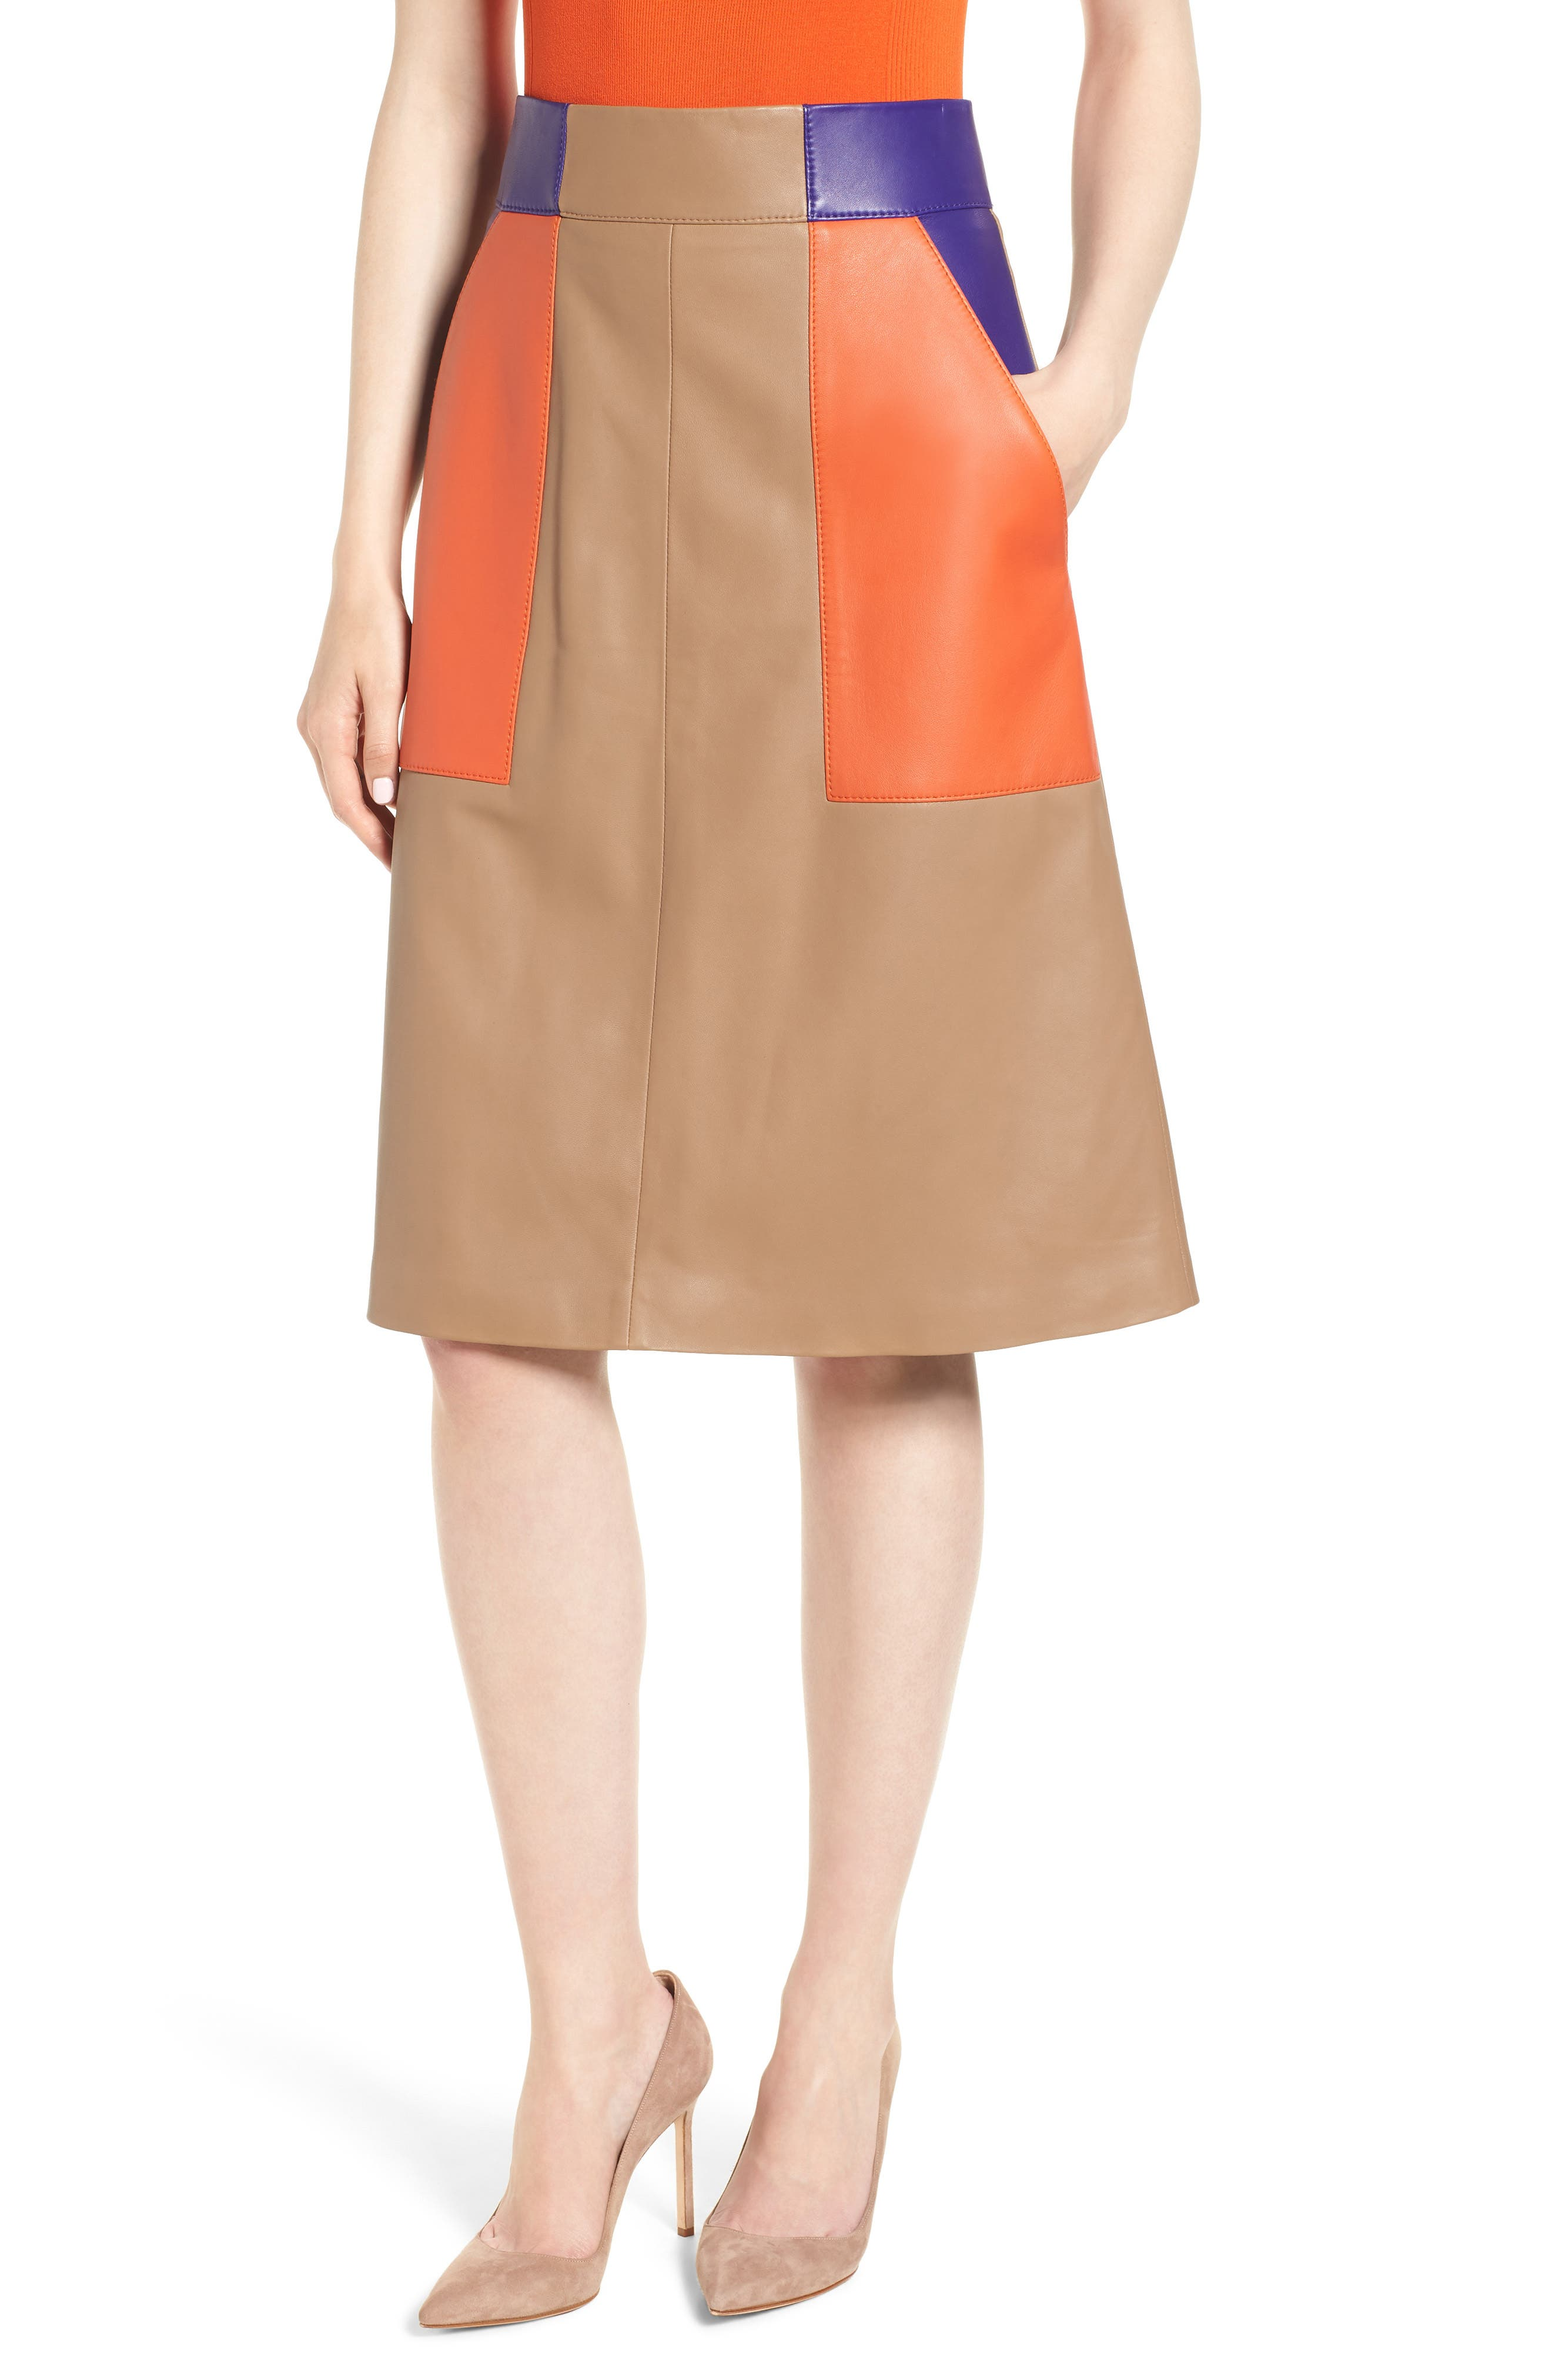 Seplea Colorblock Leather Skirt,                         Main,                         color, Warm Clay Fantasy